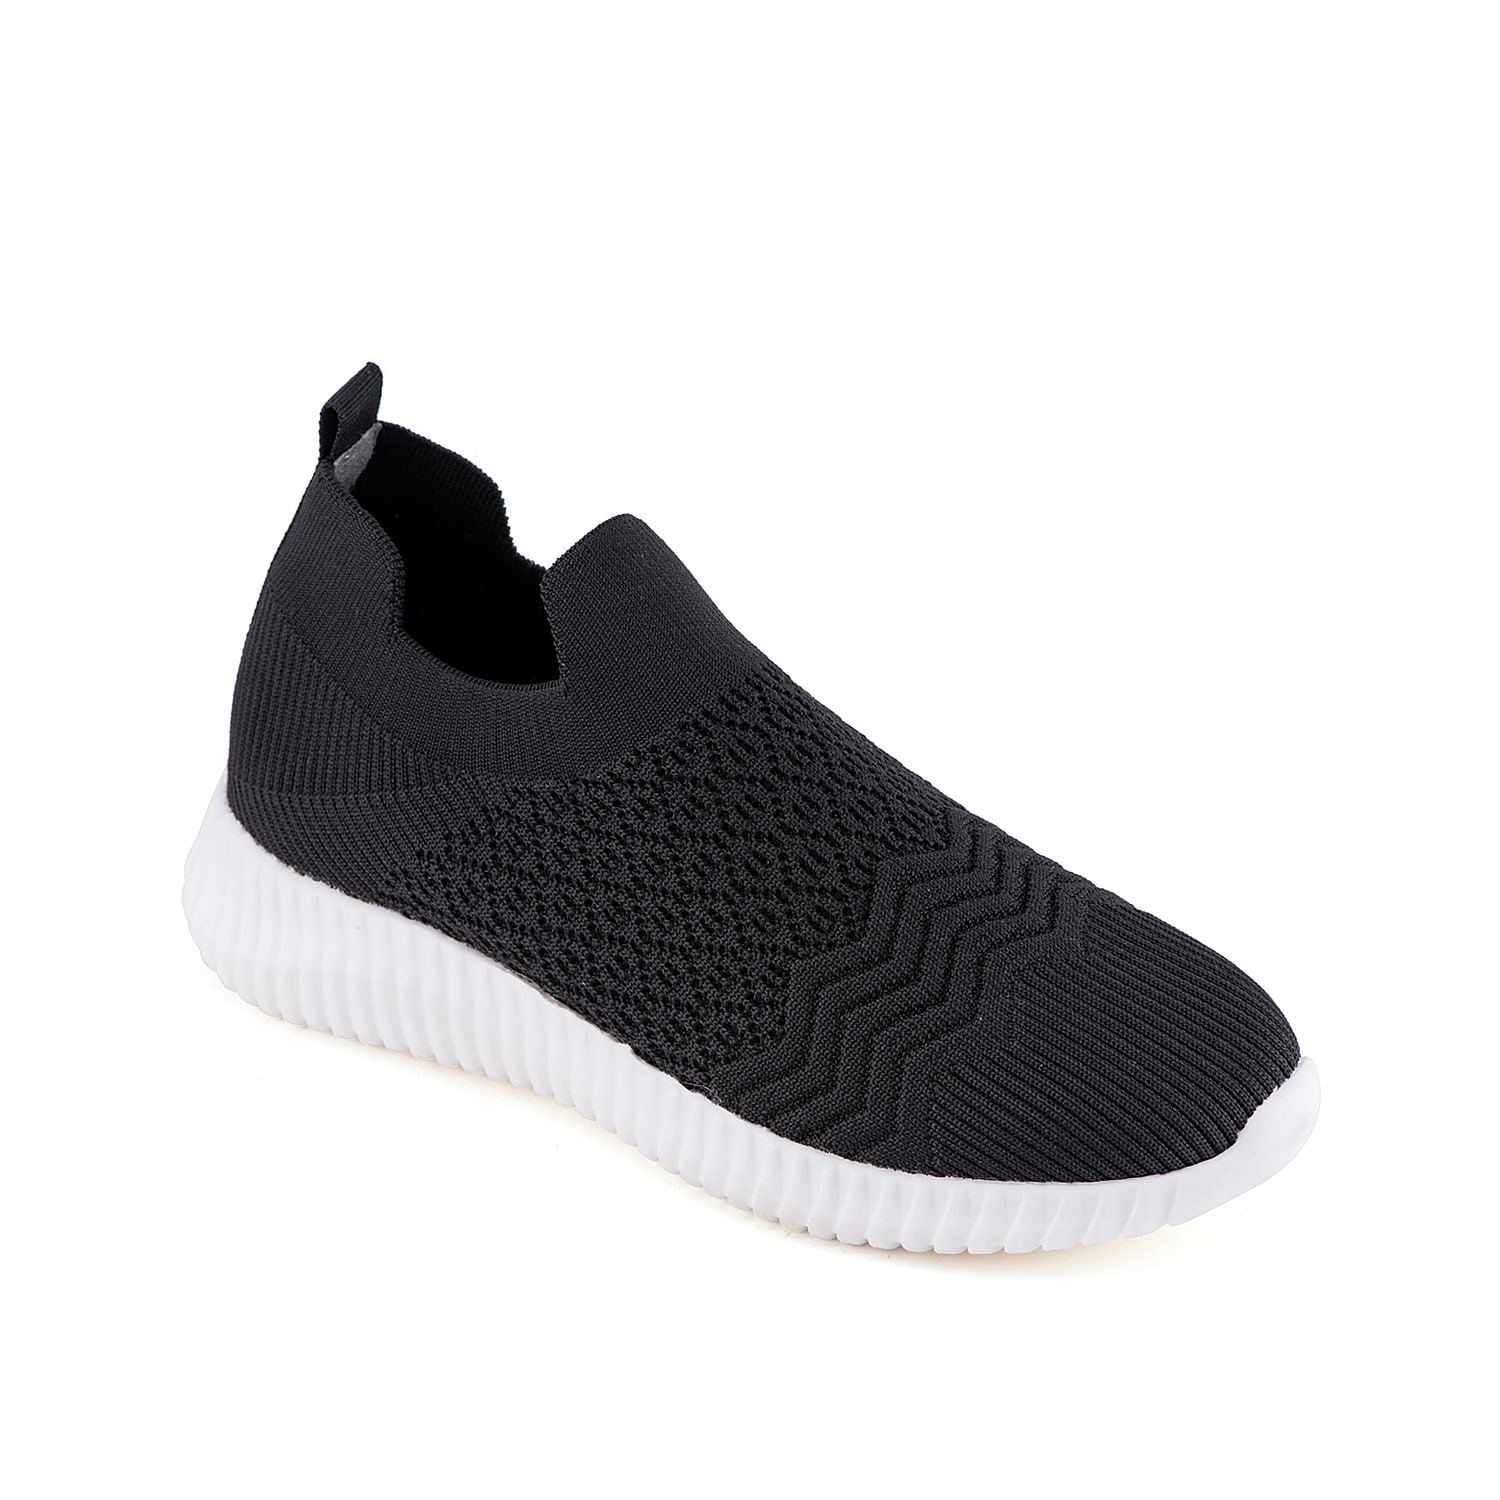 Show off sporty looks with the Tenika slip-on sneaker from David Tate. The stretchy knit upper complements the textured foam midsole for modern style.